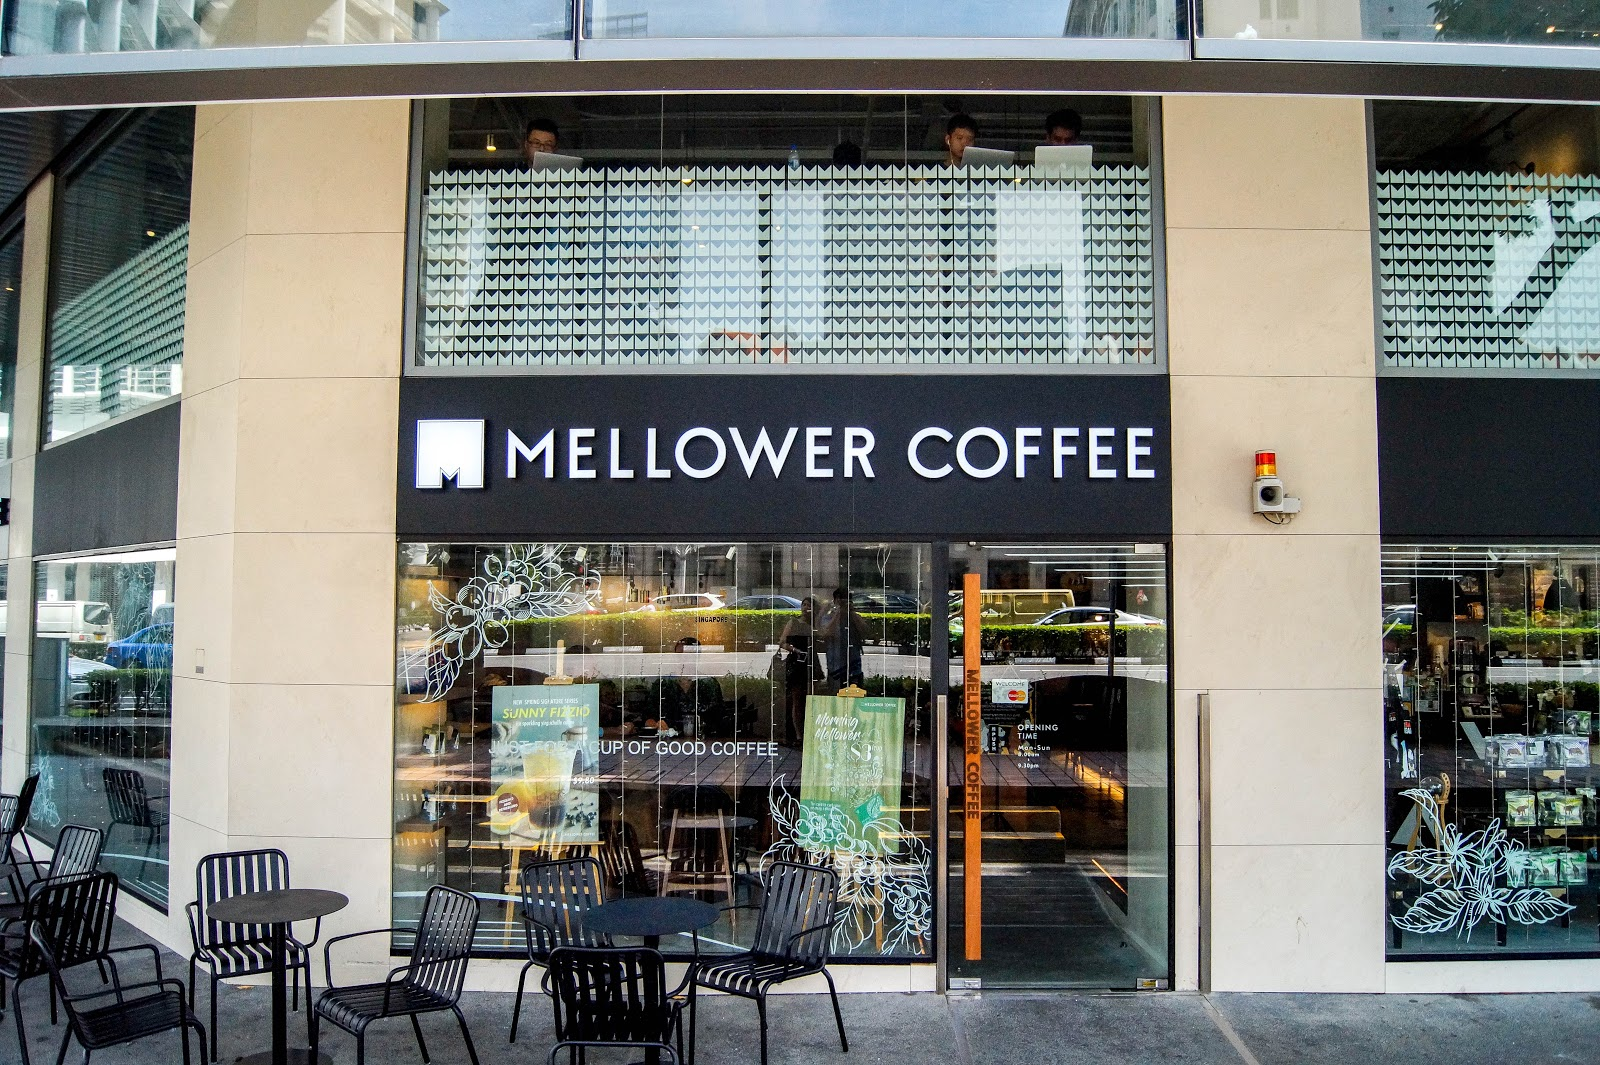 Mellower Coffee The Chinese Brand That Made It Big Prima Donna Life